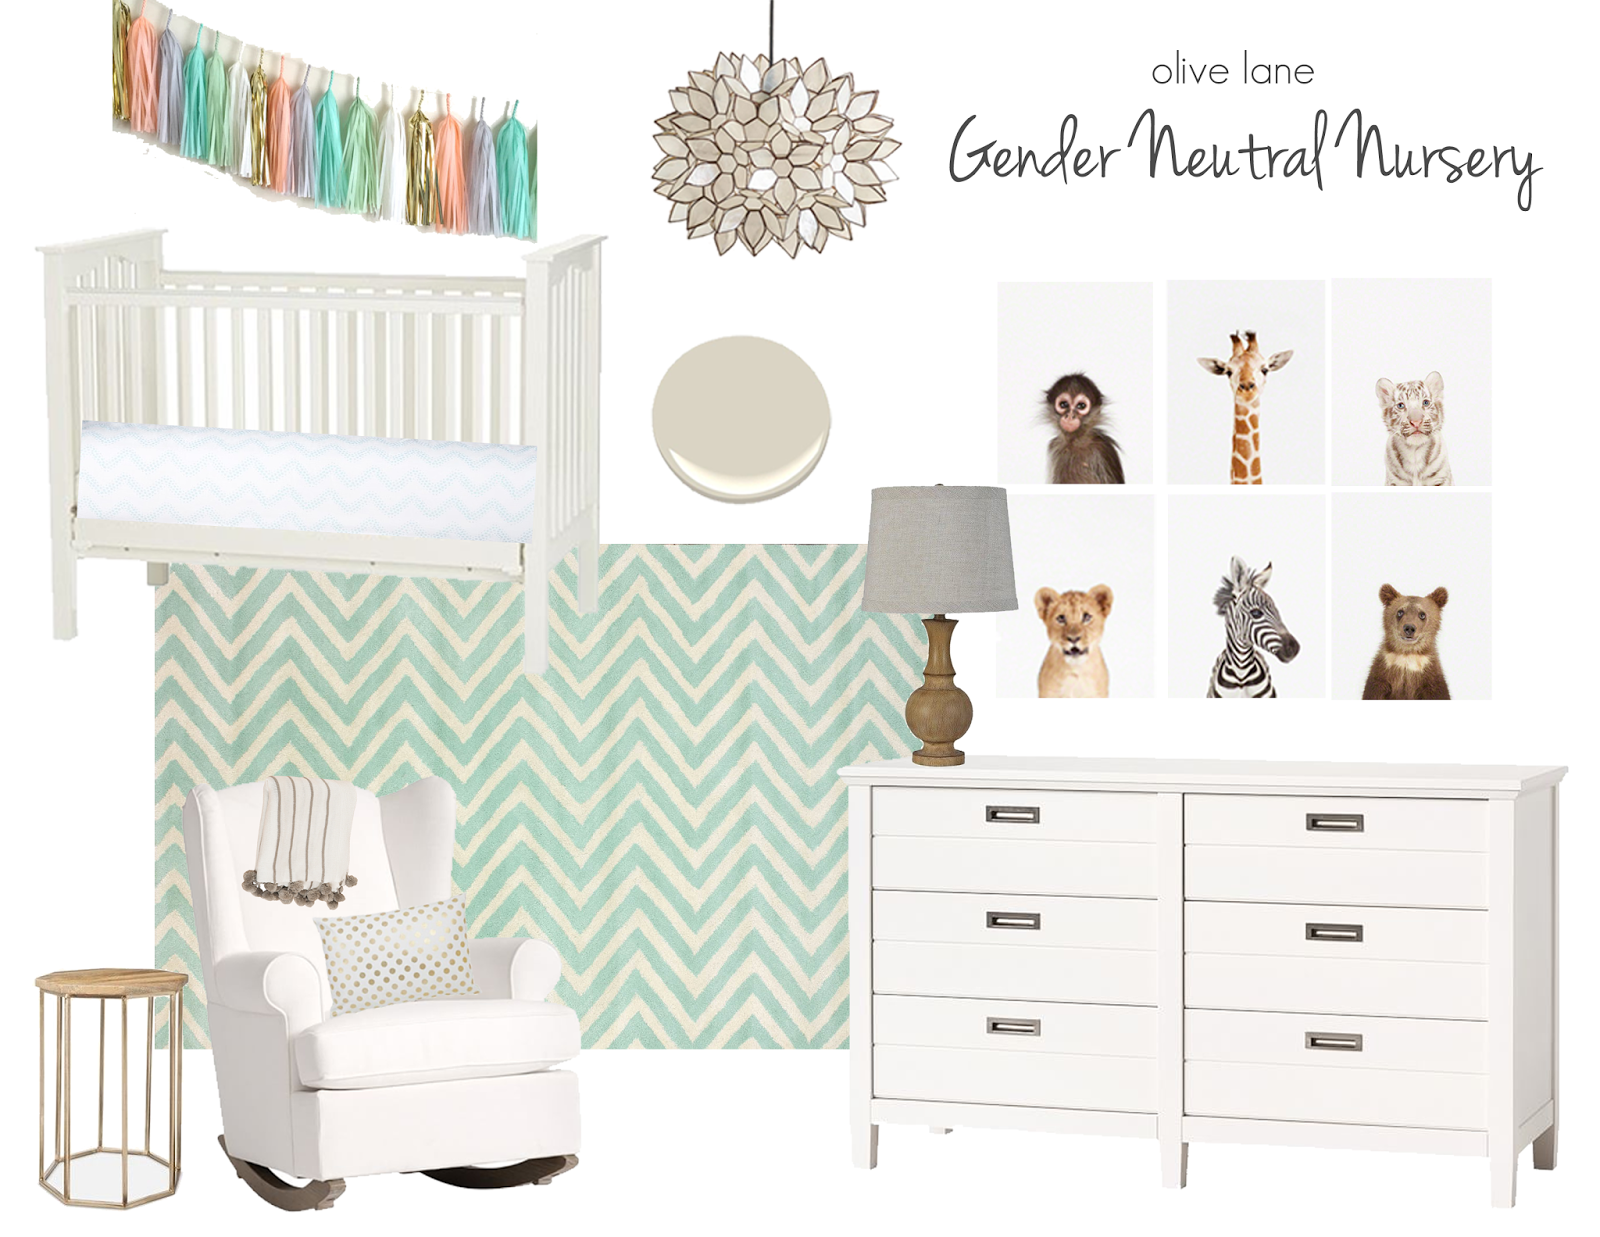 Gender Neutral Nursery Design Mint Green and Gold Olive Lane www.olivelaneinteriors.com